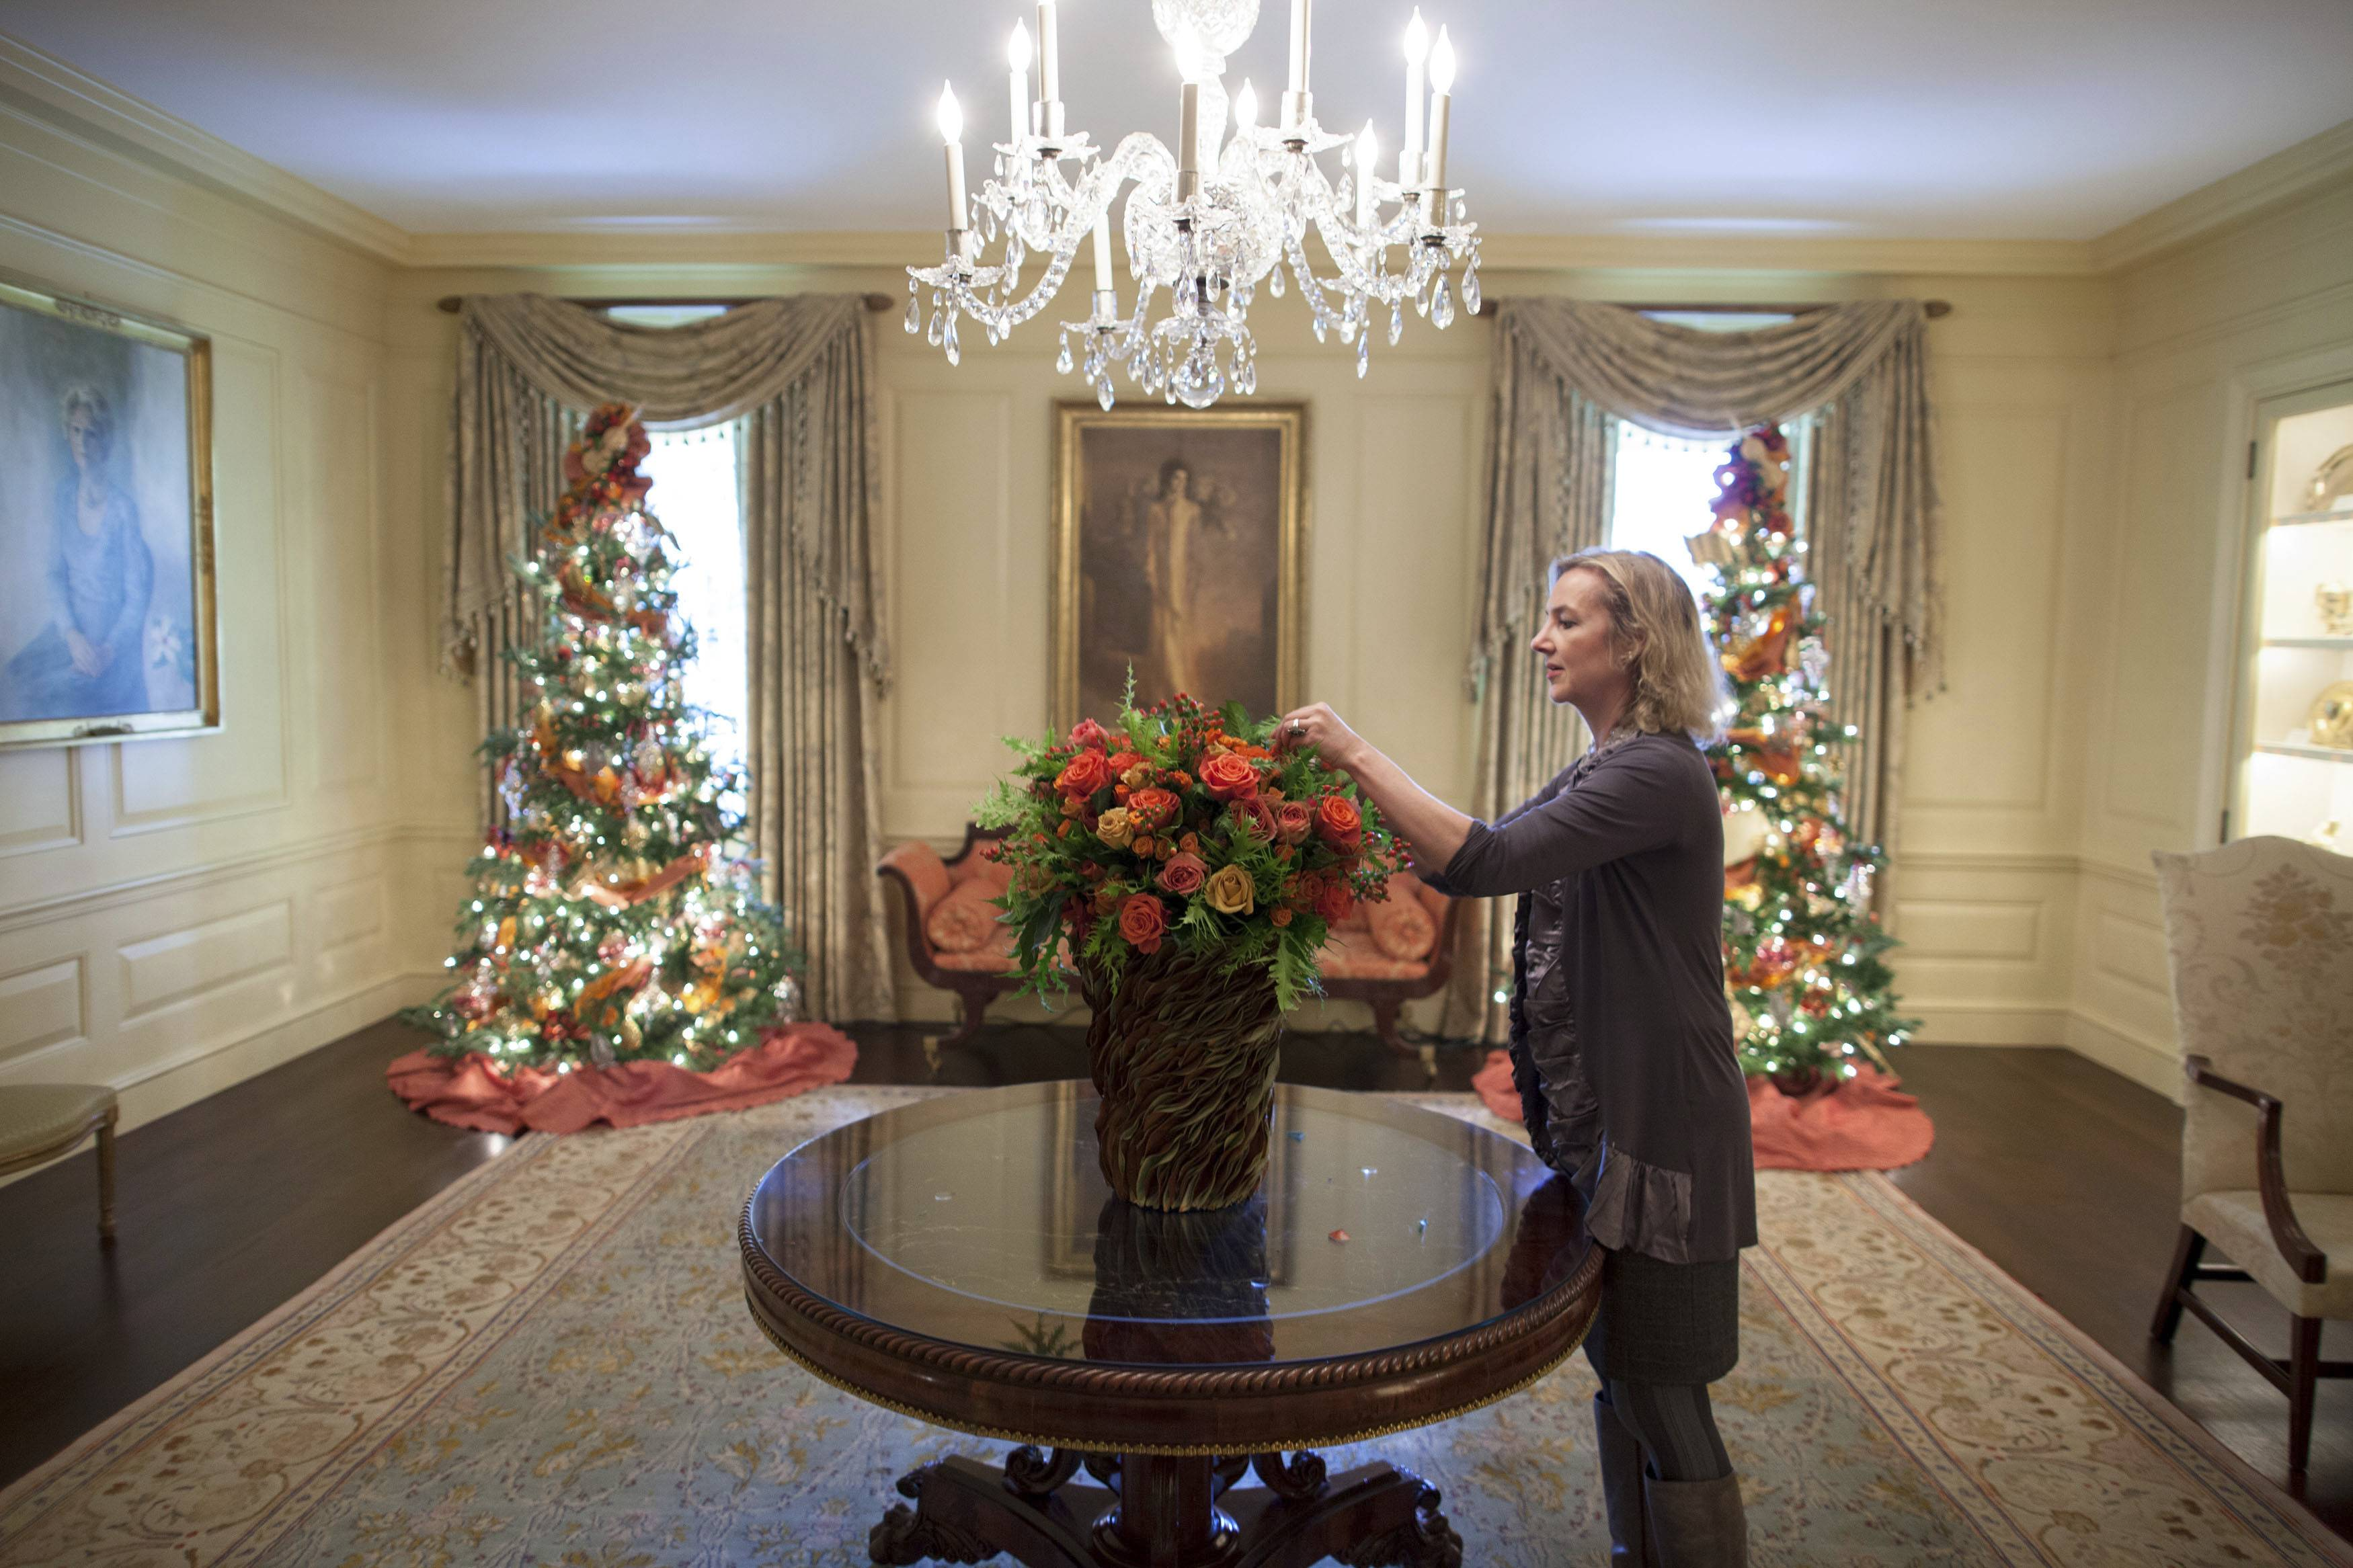 Laura Dowling completes a holiday arrangement of peach and coral roses in a magnolia leaf vase in the Vermeil Room, before the launch of the White House Christmas season, with the Aaron Shikler portrait of first lady Jacqueline Kennedy in the background.